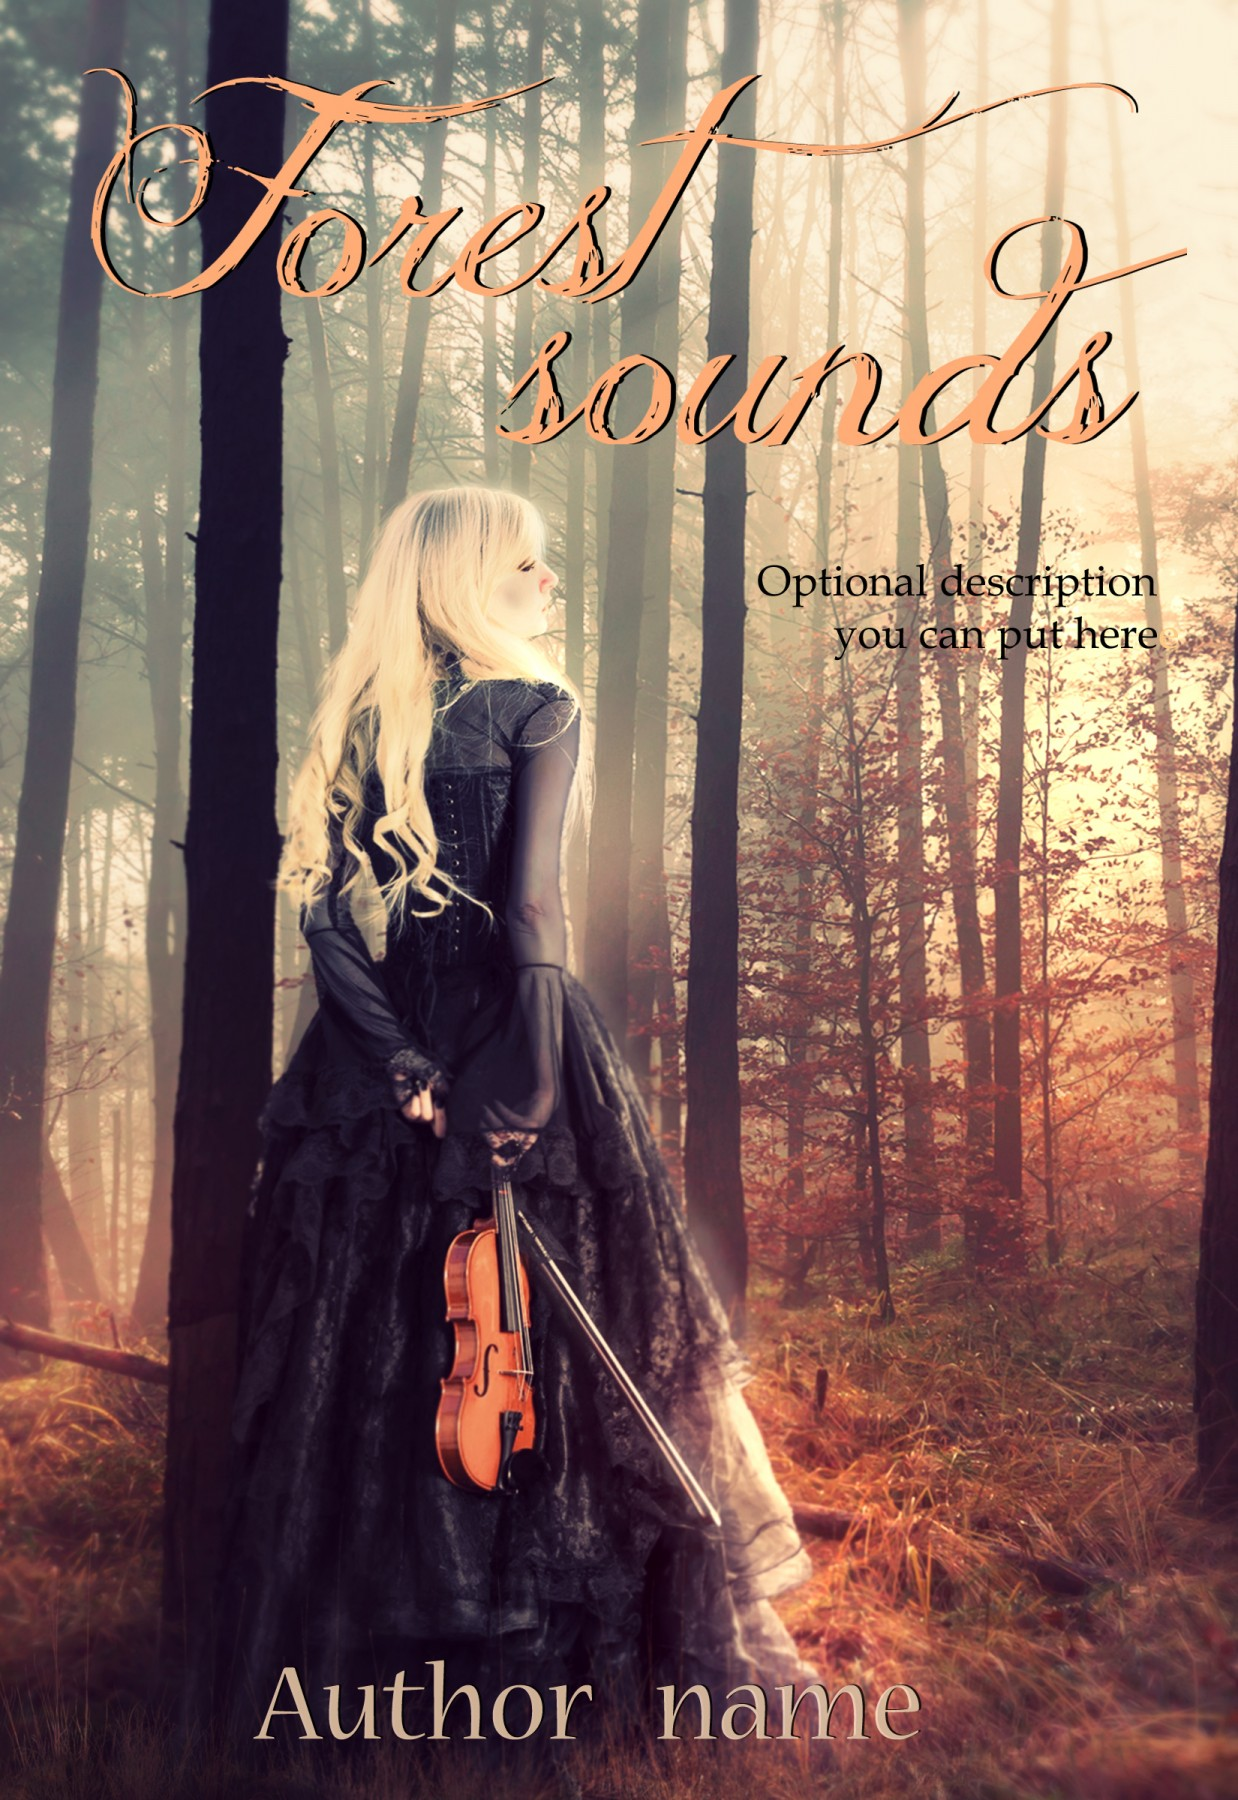 Forest sounds - The Book Cover Designer